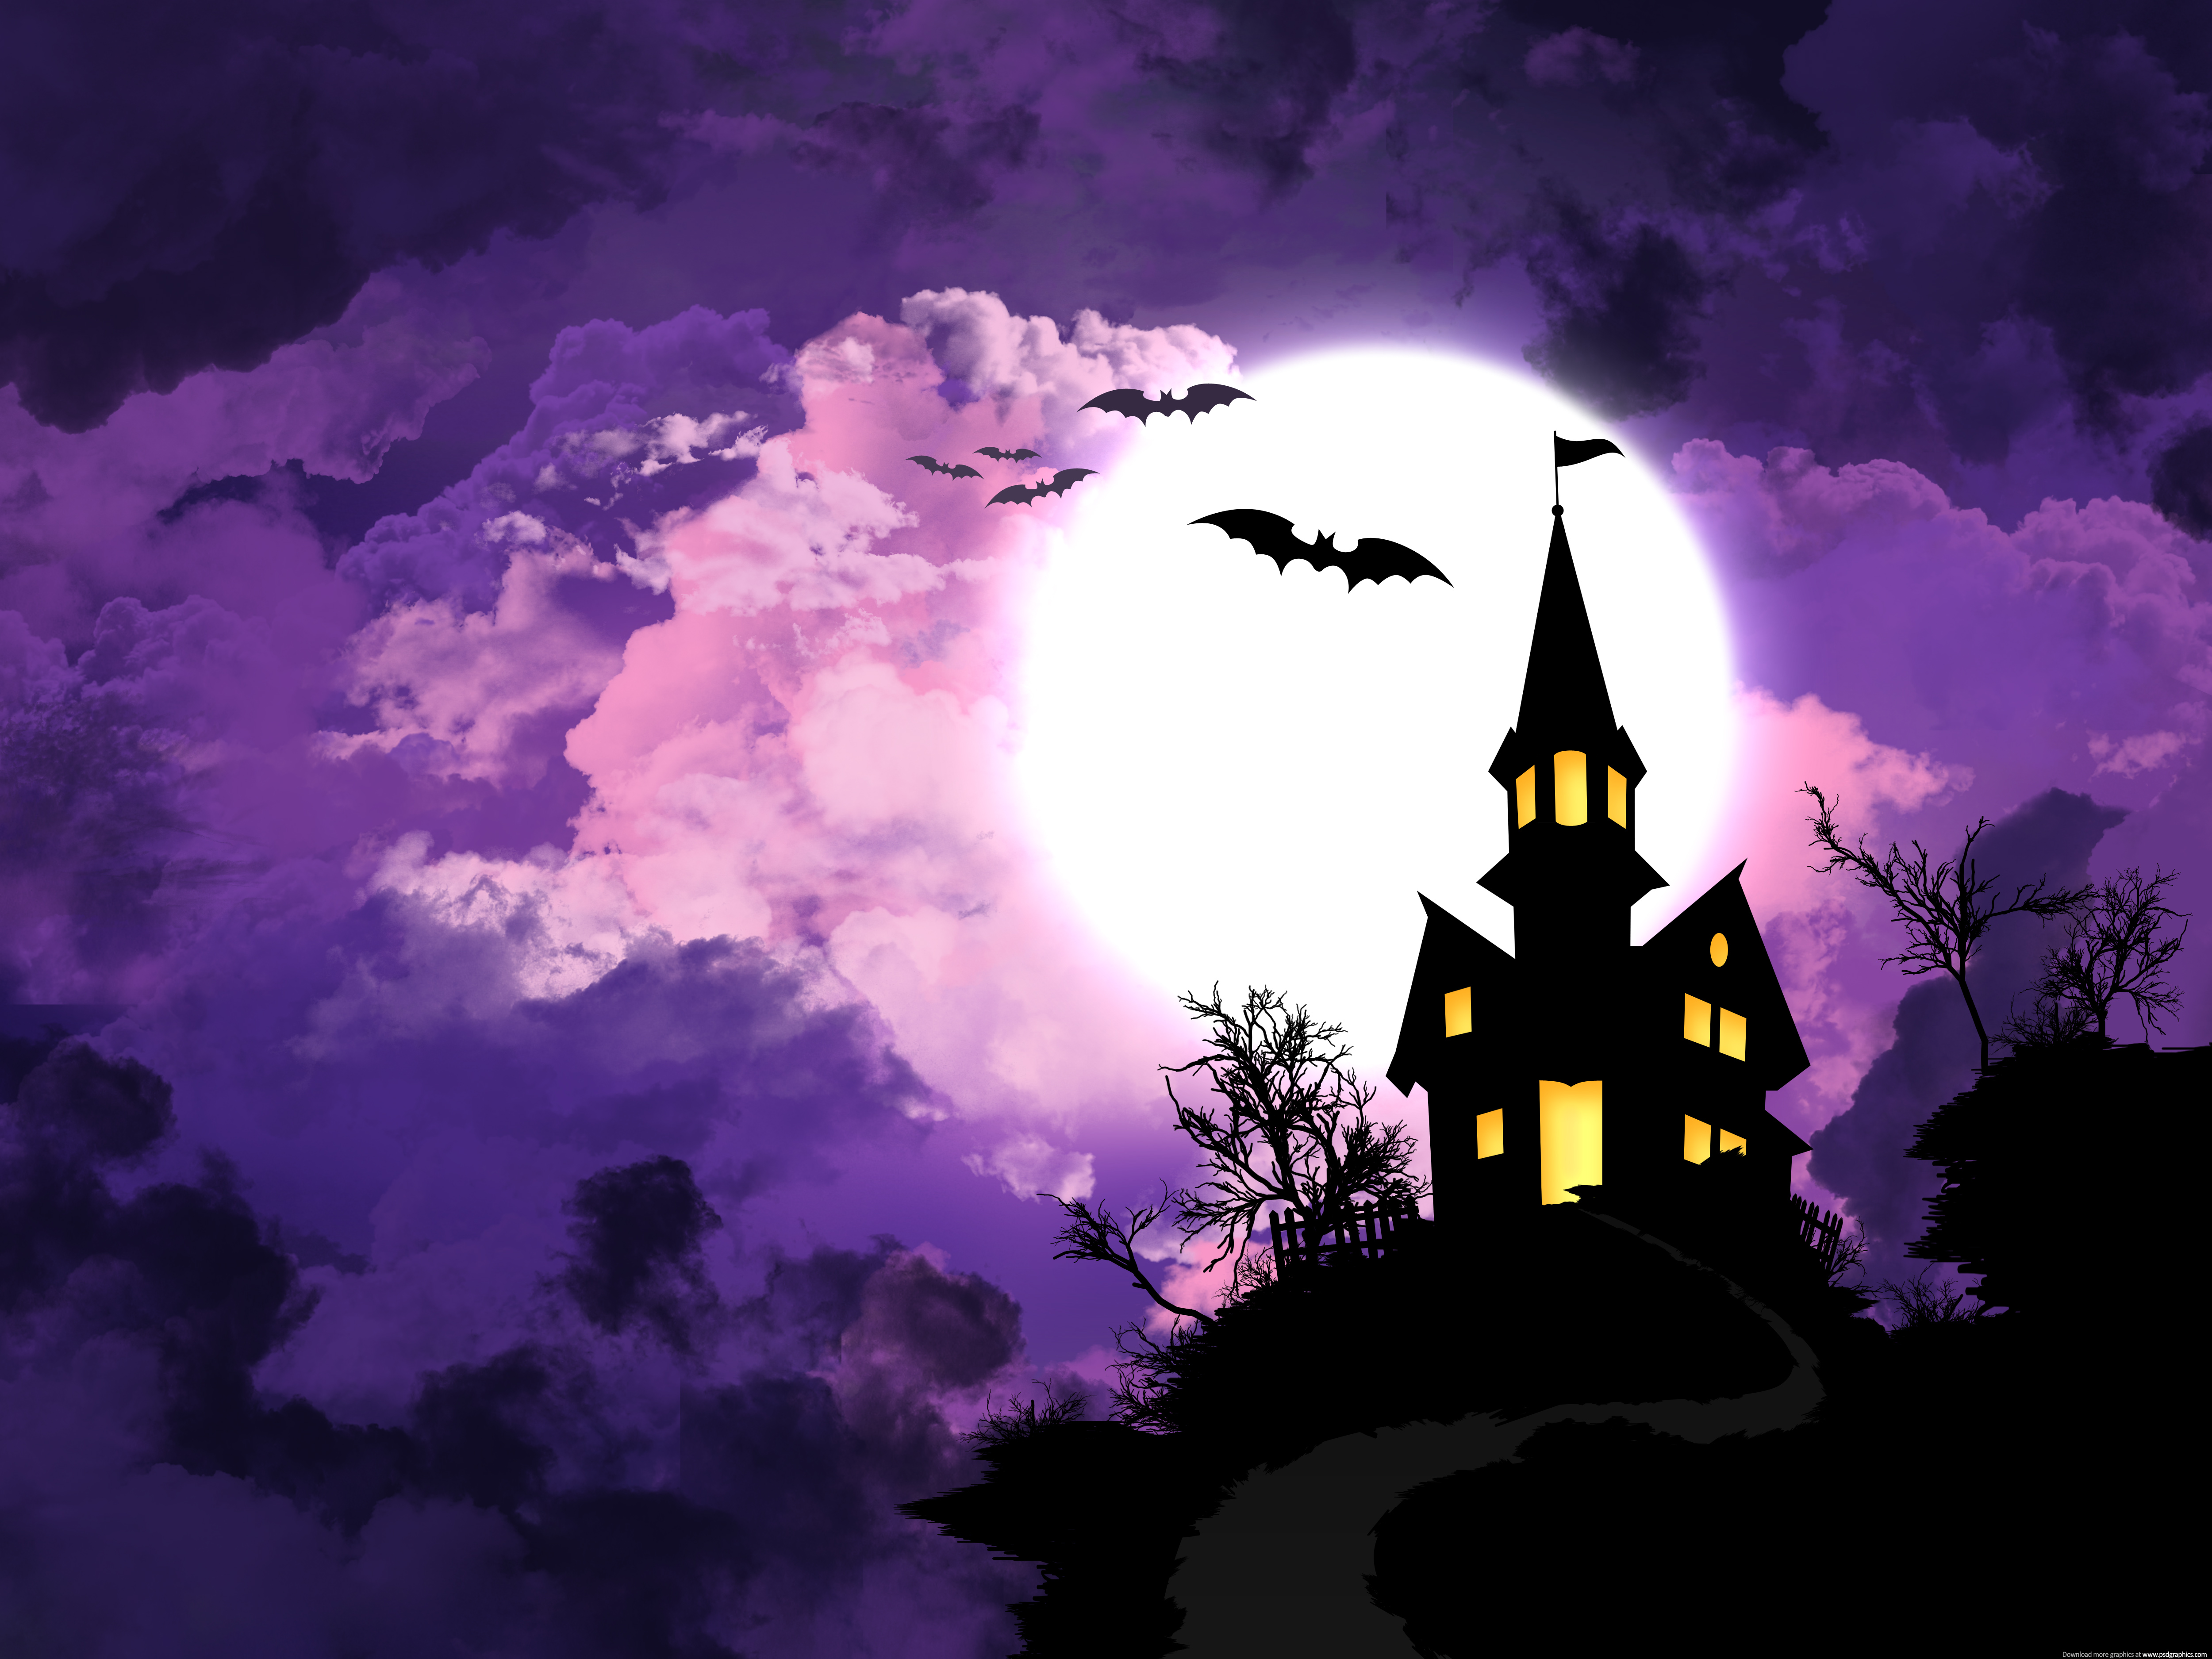 Halloween Background Wallpaper Images 10 Cool Hd Wallpaperizcom 5000x3750